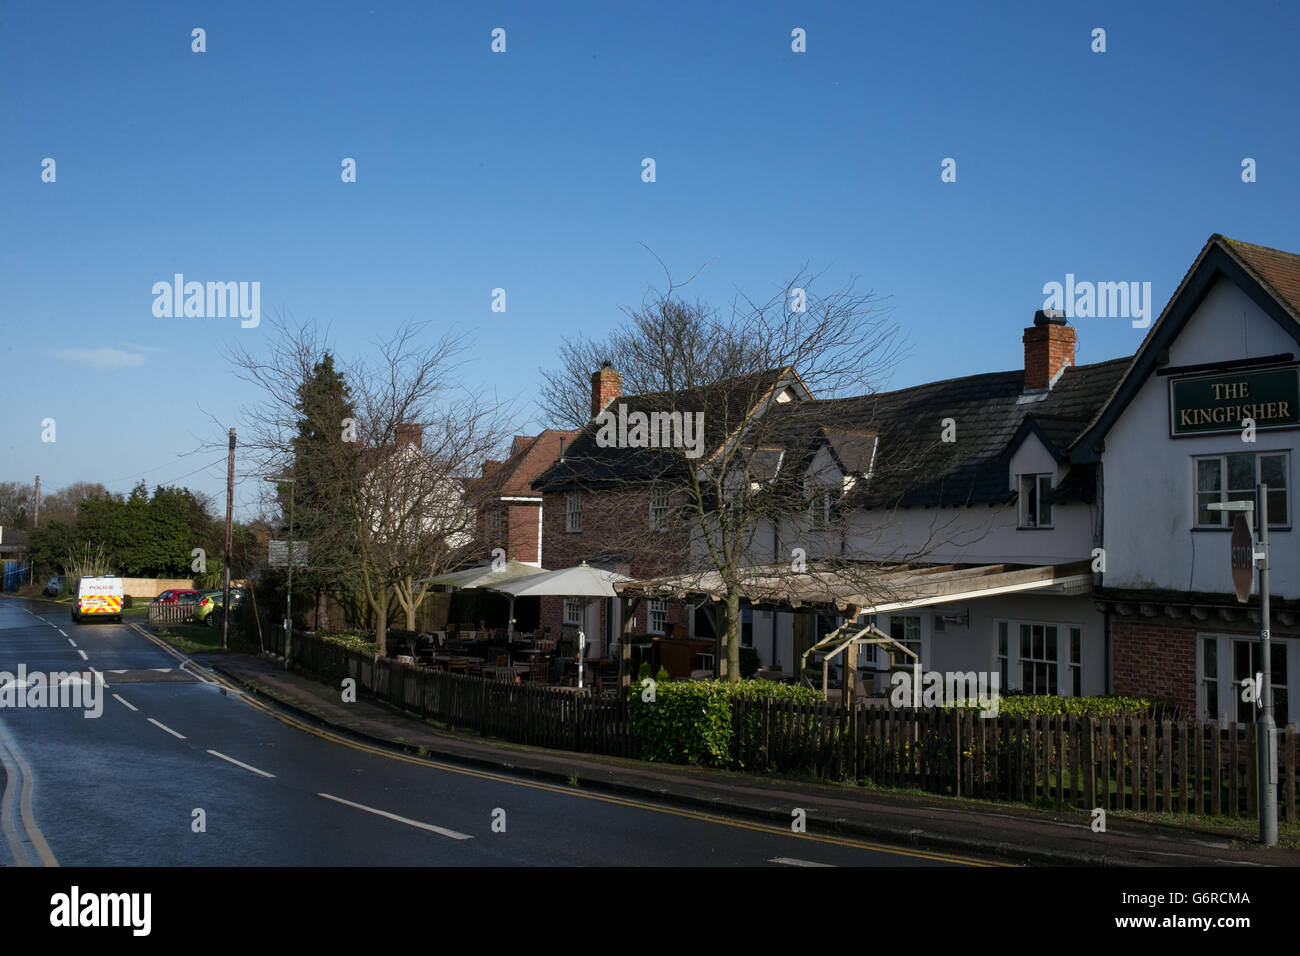 Properties evacuated over sickness - Stock Image